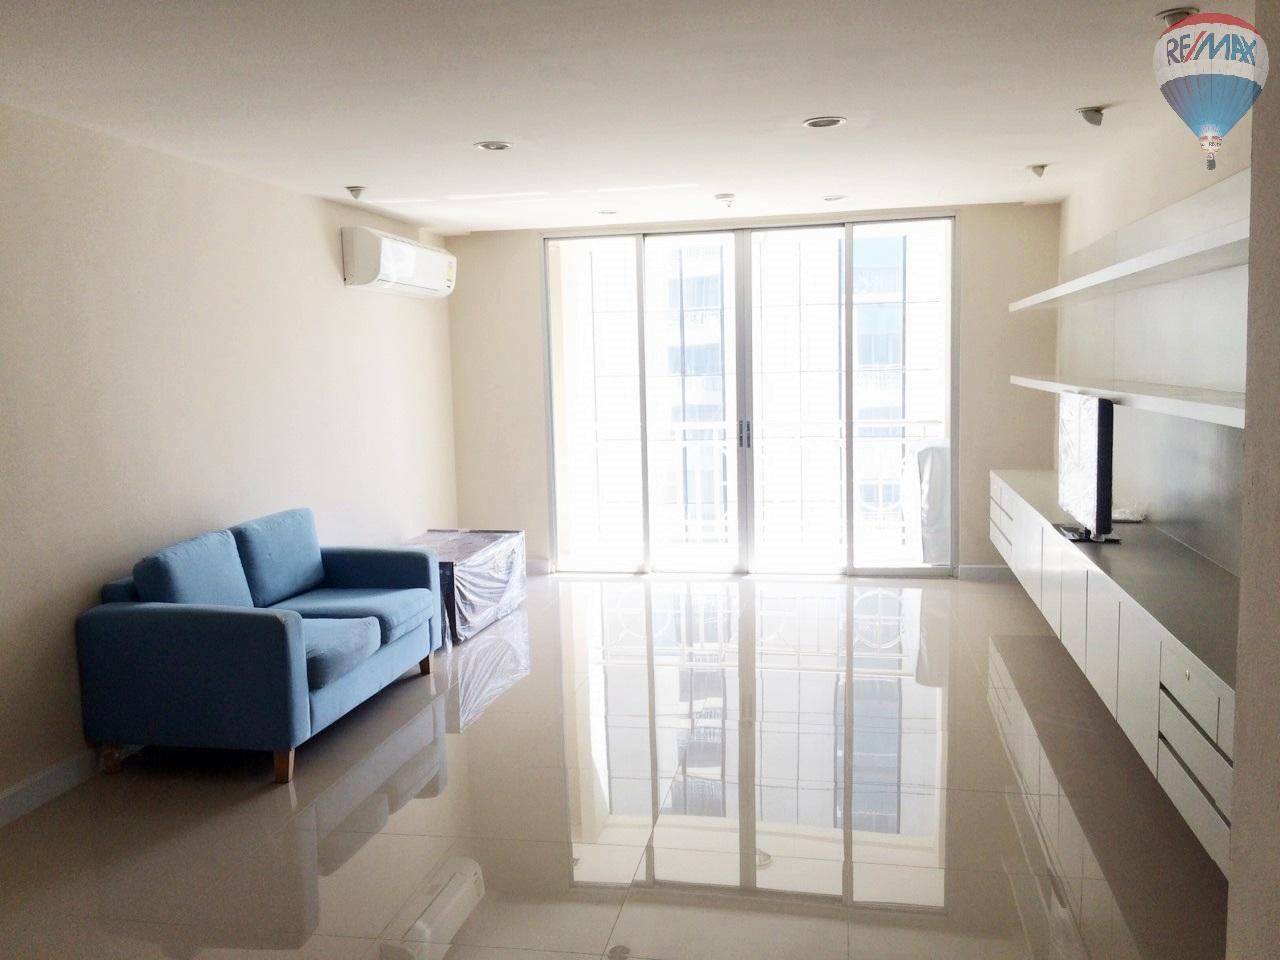 RE/MAX Properties Agency's 2 Bedroom 86 sq.m. for Rent at Asoke Place 1